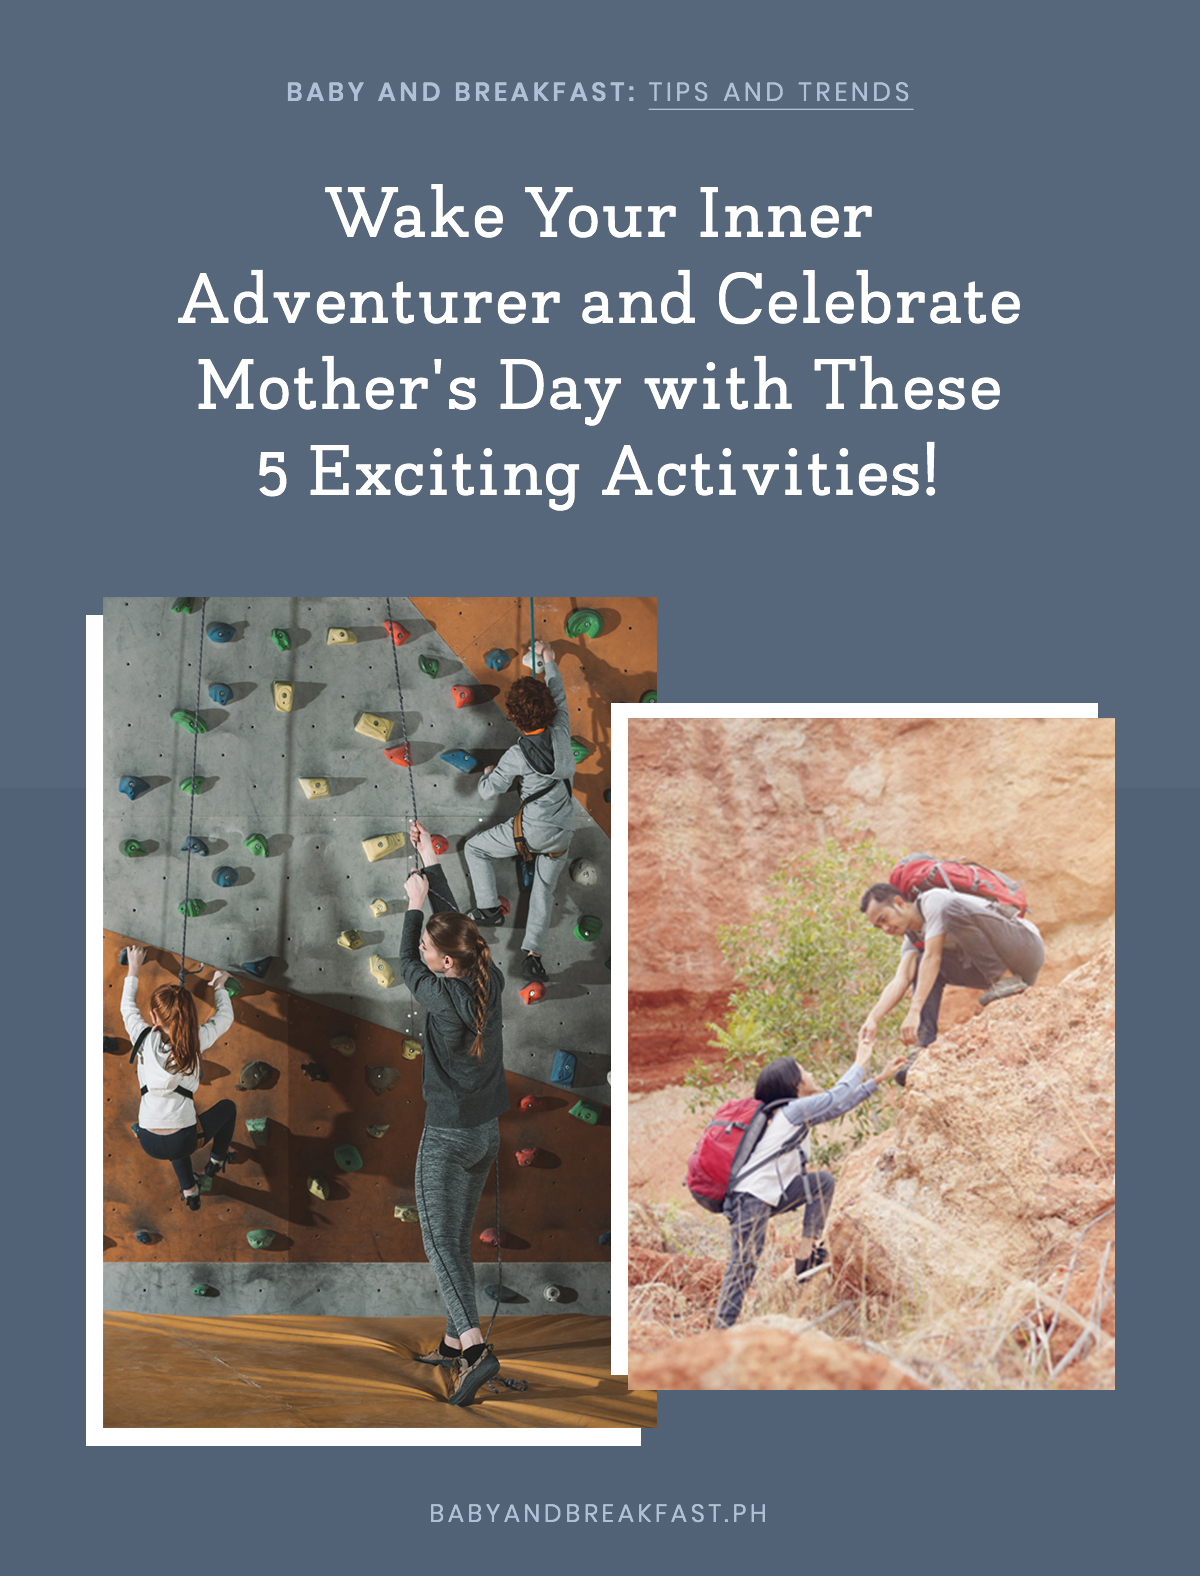 Baby and Breakfast: Tips and Trends Wake Your Inner Adventurer and Celebrate Mother's Day with These 5 Exciting Activities!